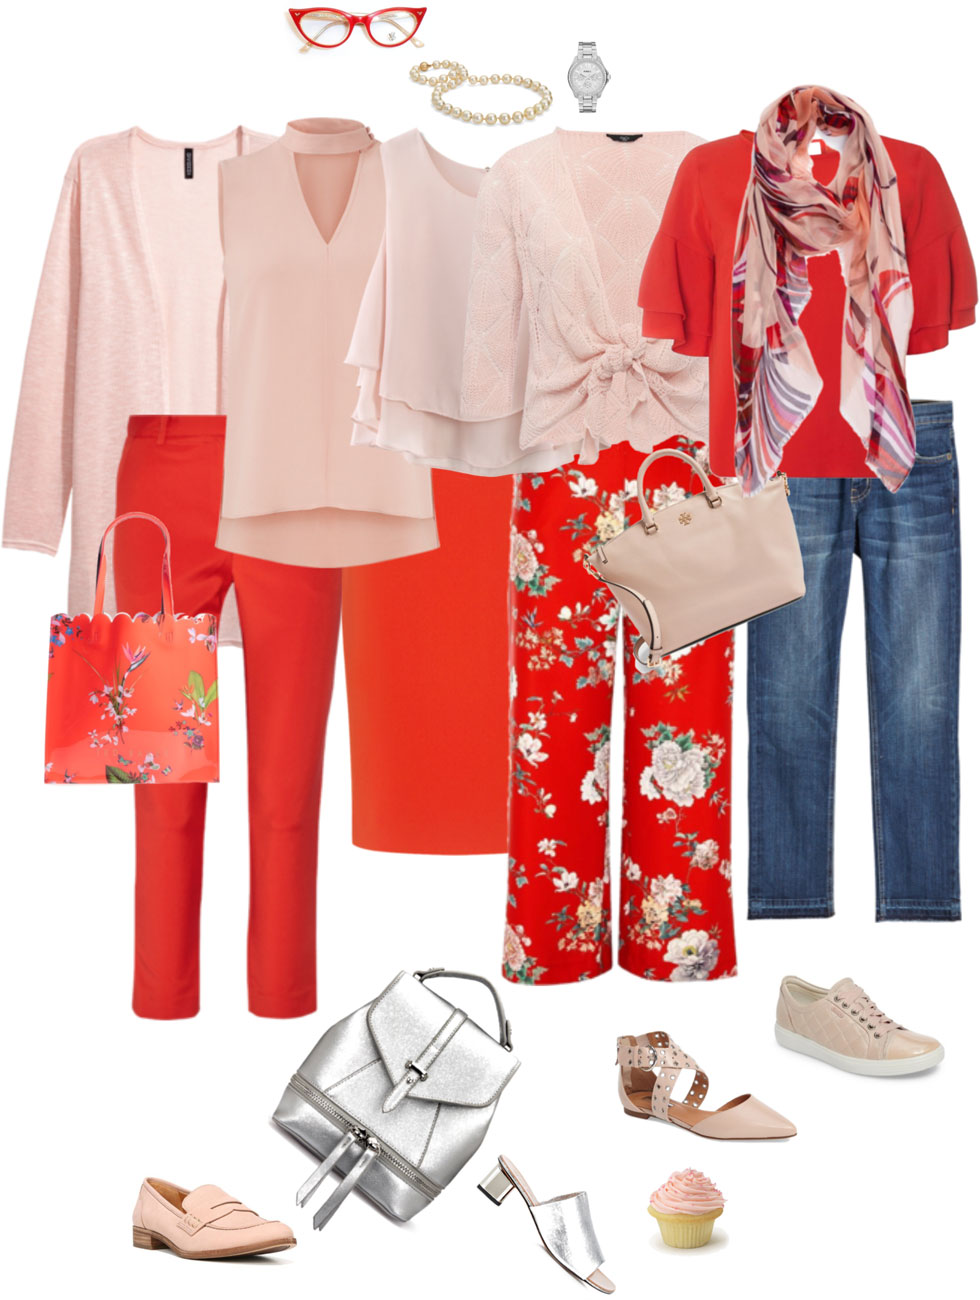 Ensemble: Soft Pink & Bright Red